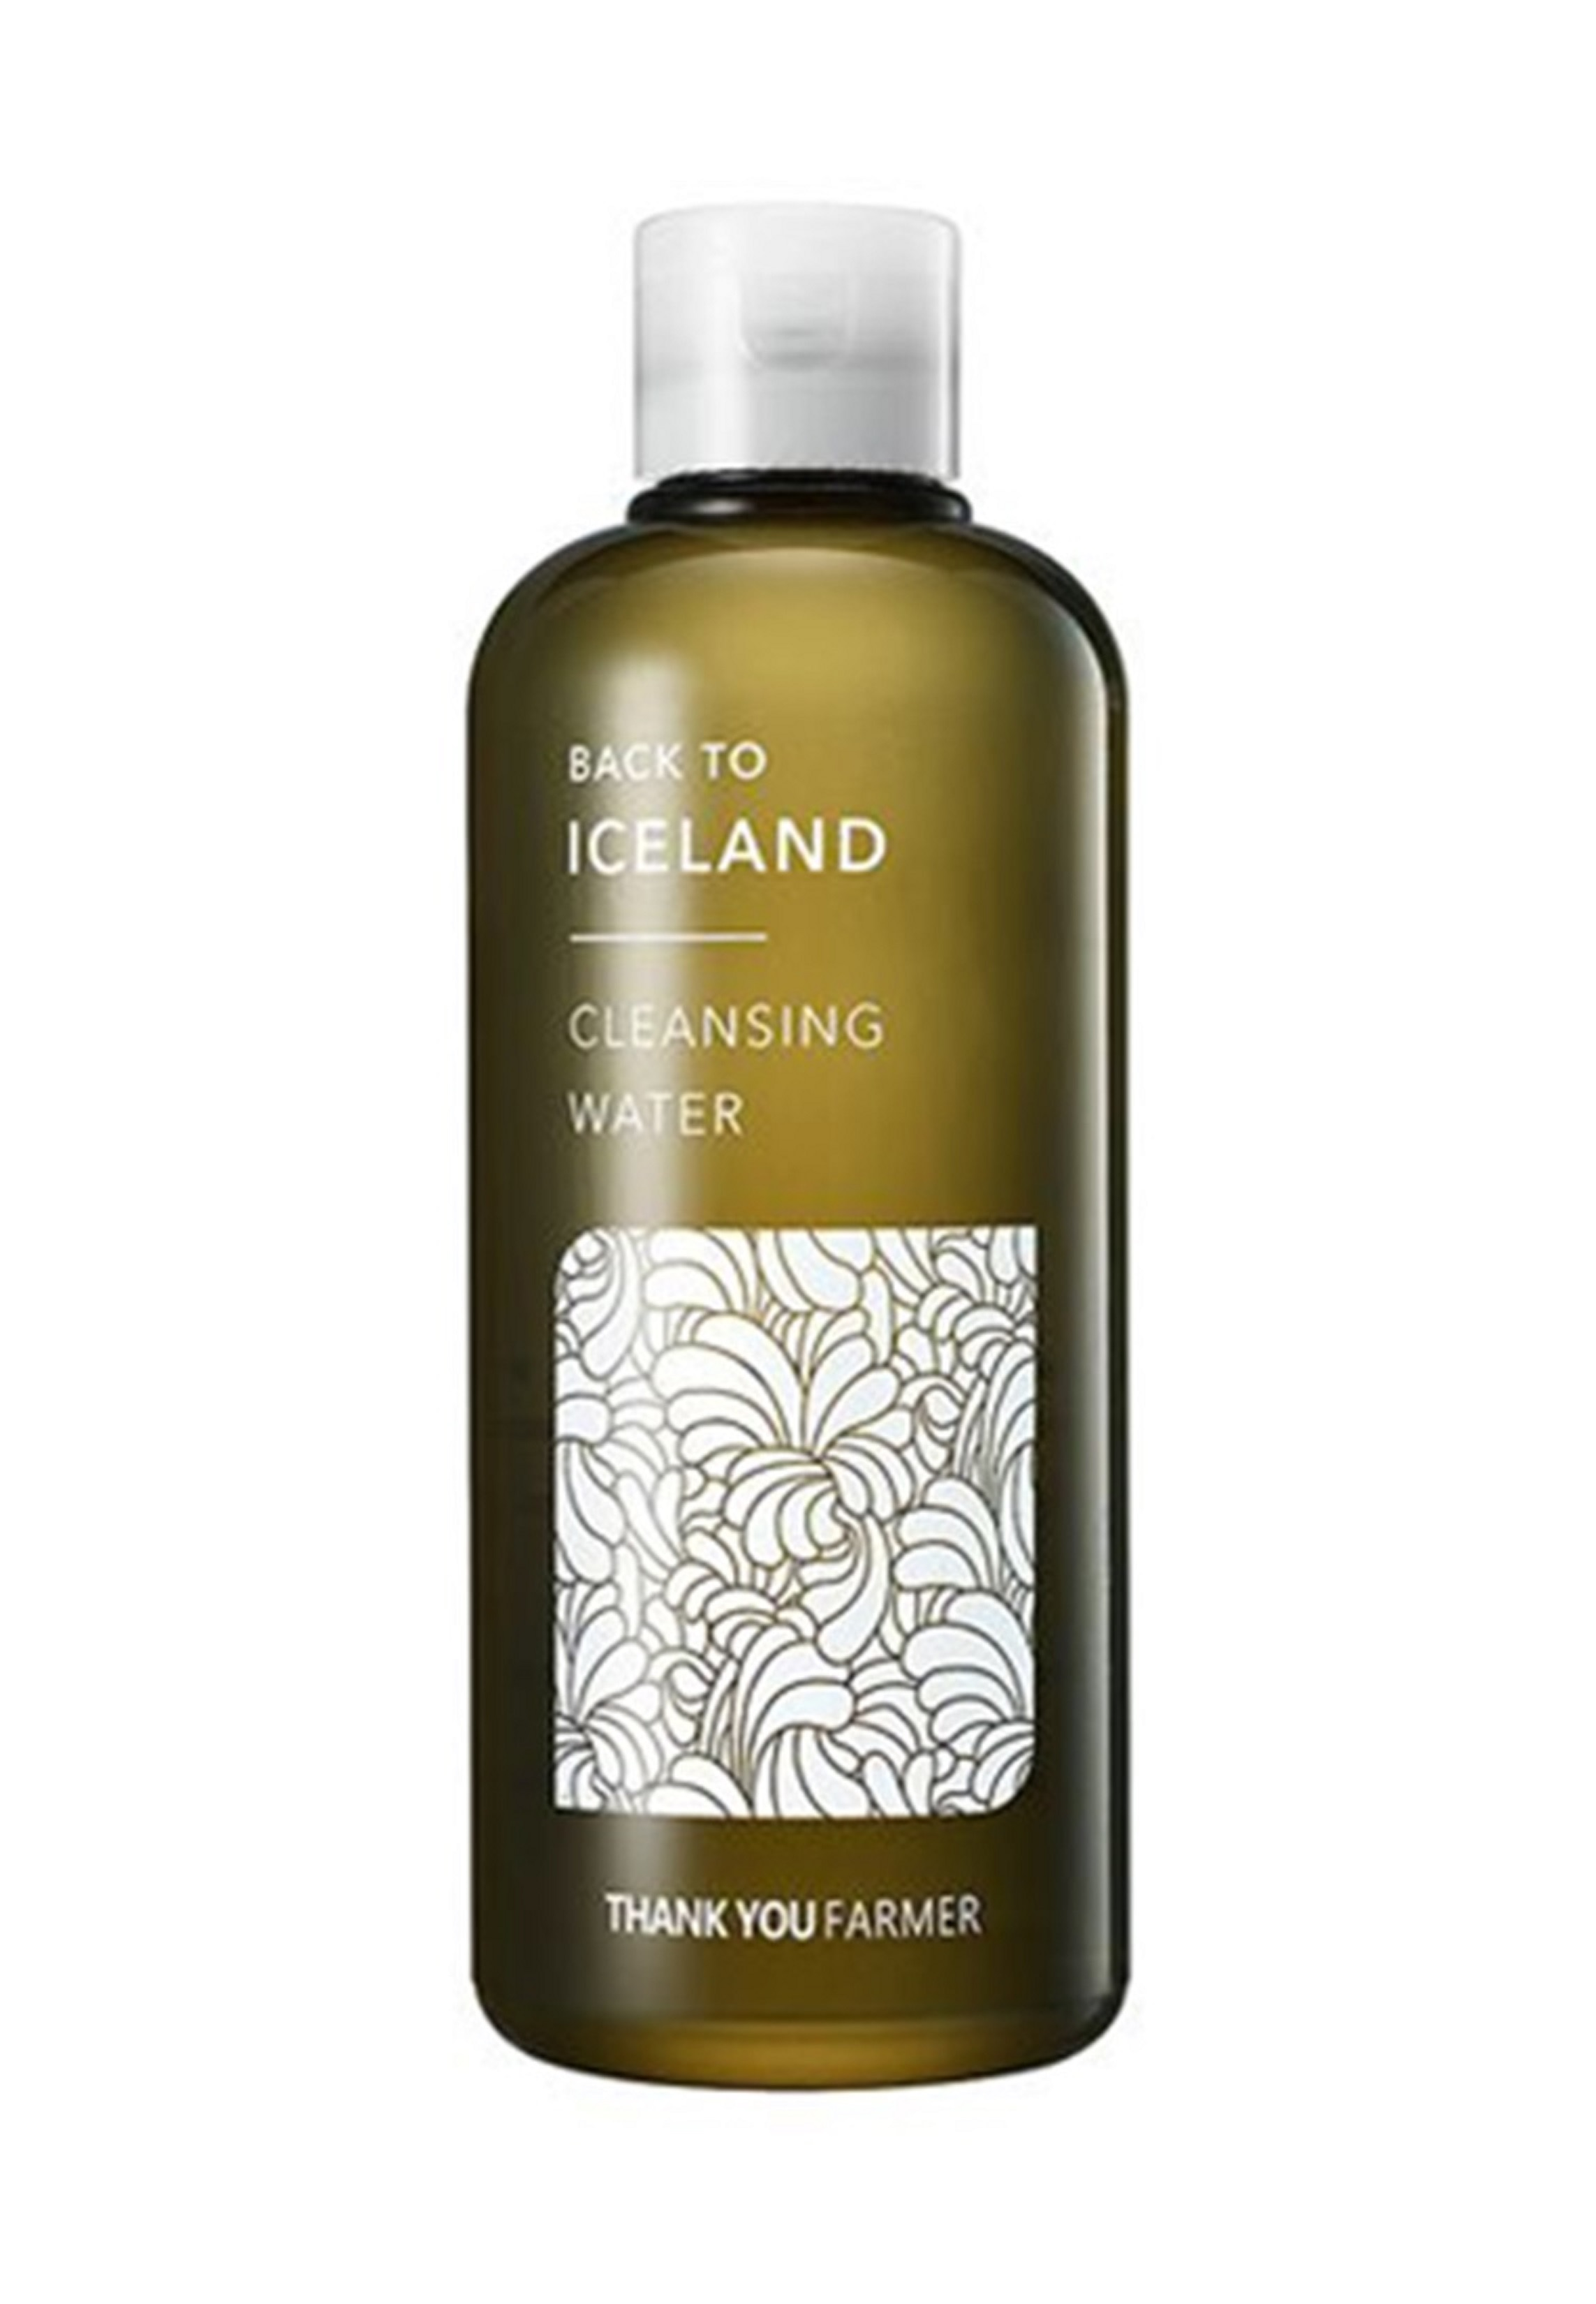 Back to Iceland Cleansing Water 260 ml